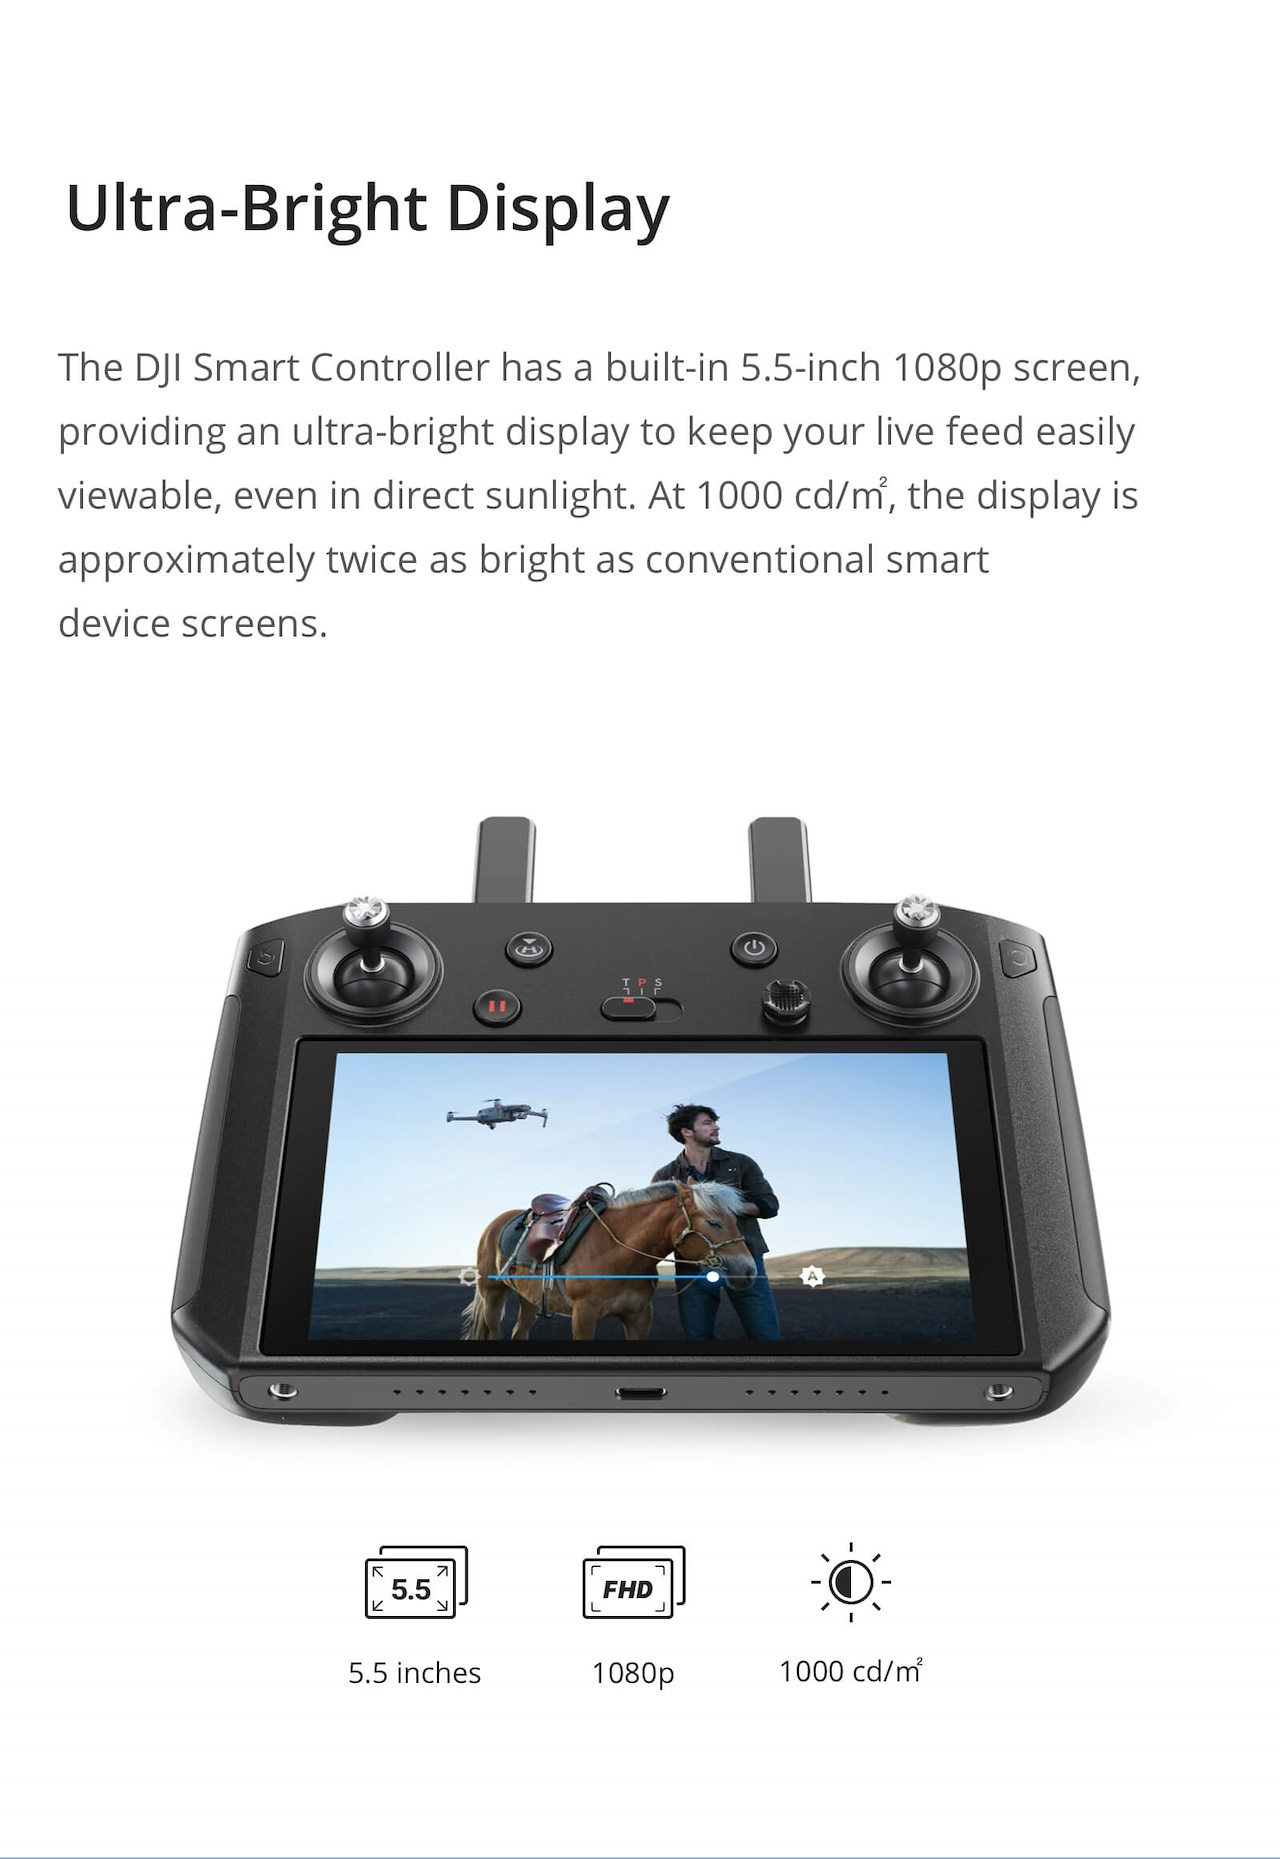 Buy DJI Smart Controller Deals for only S$1099 instead of S$1099